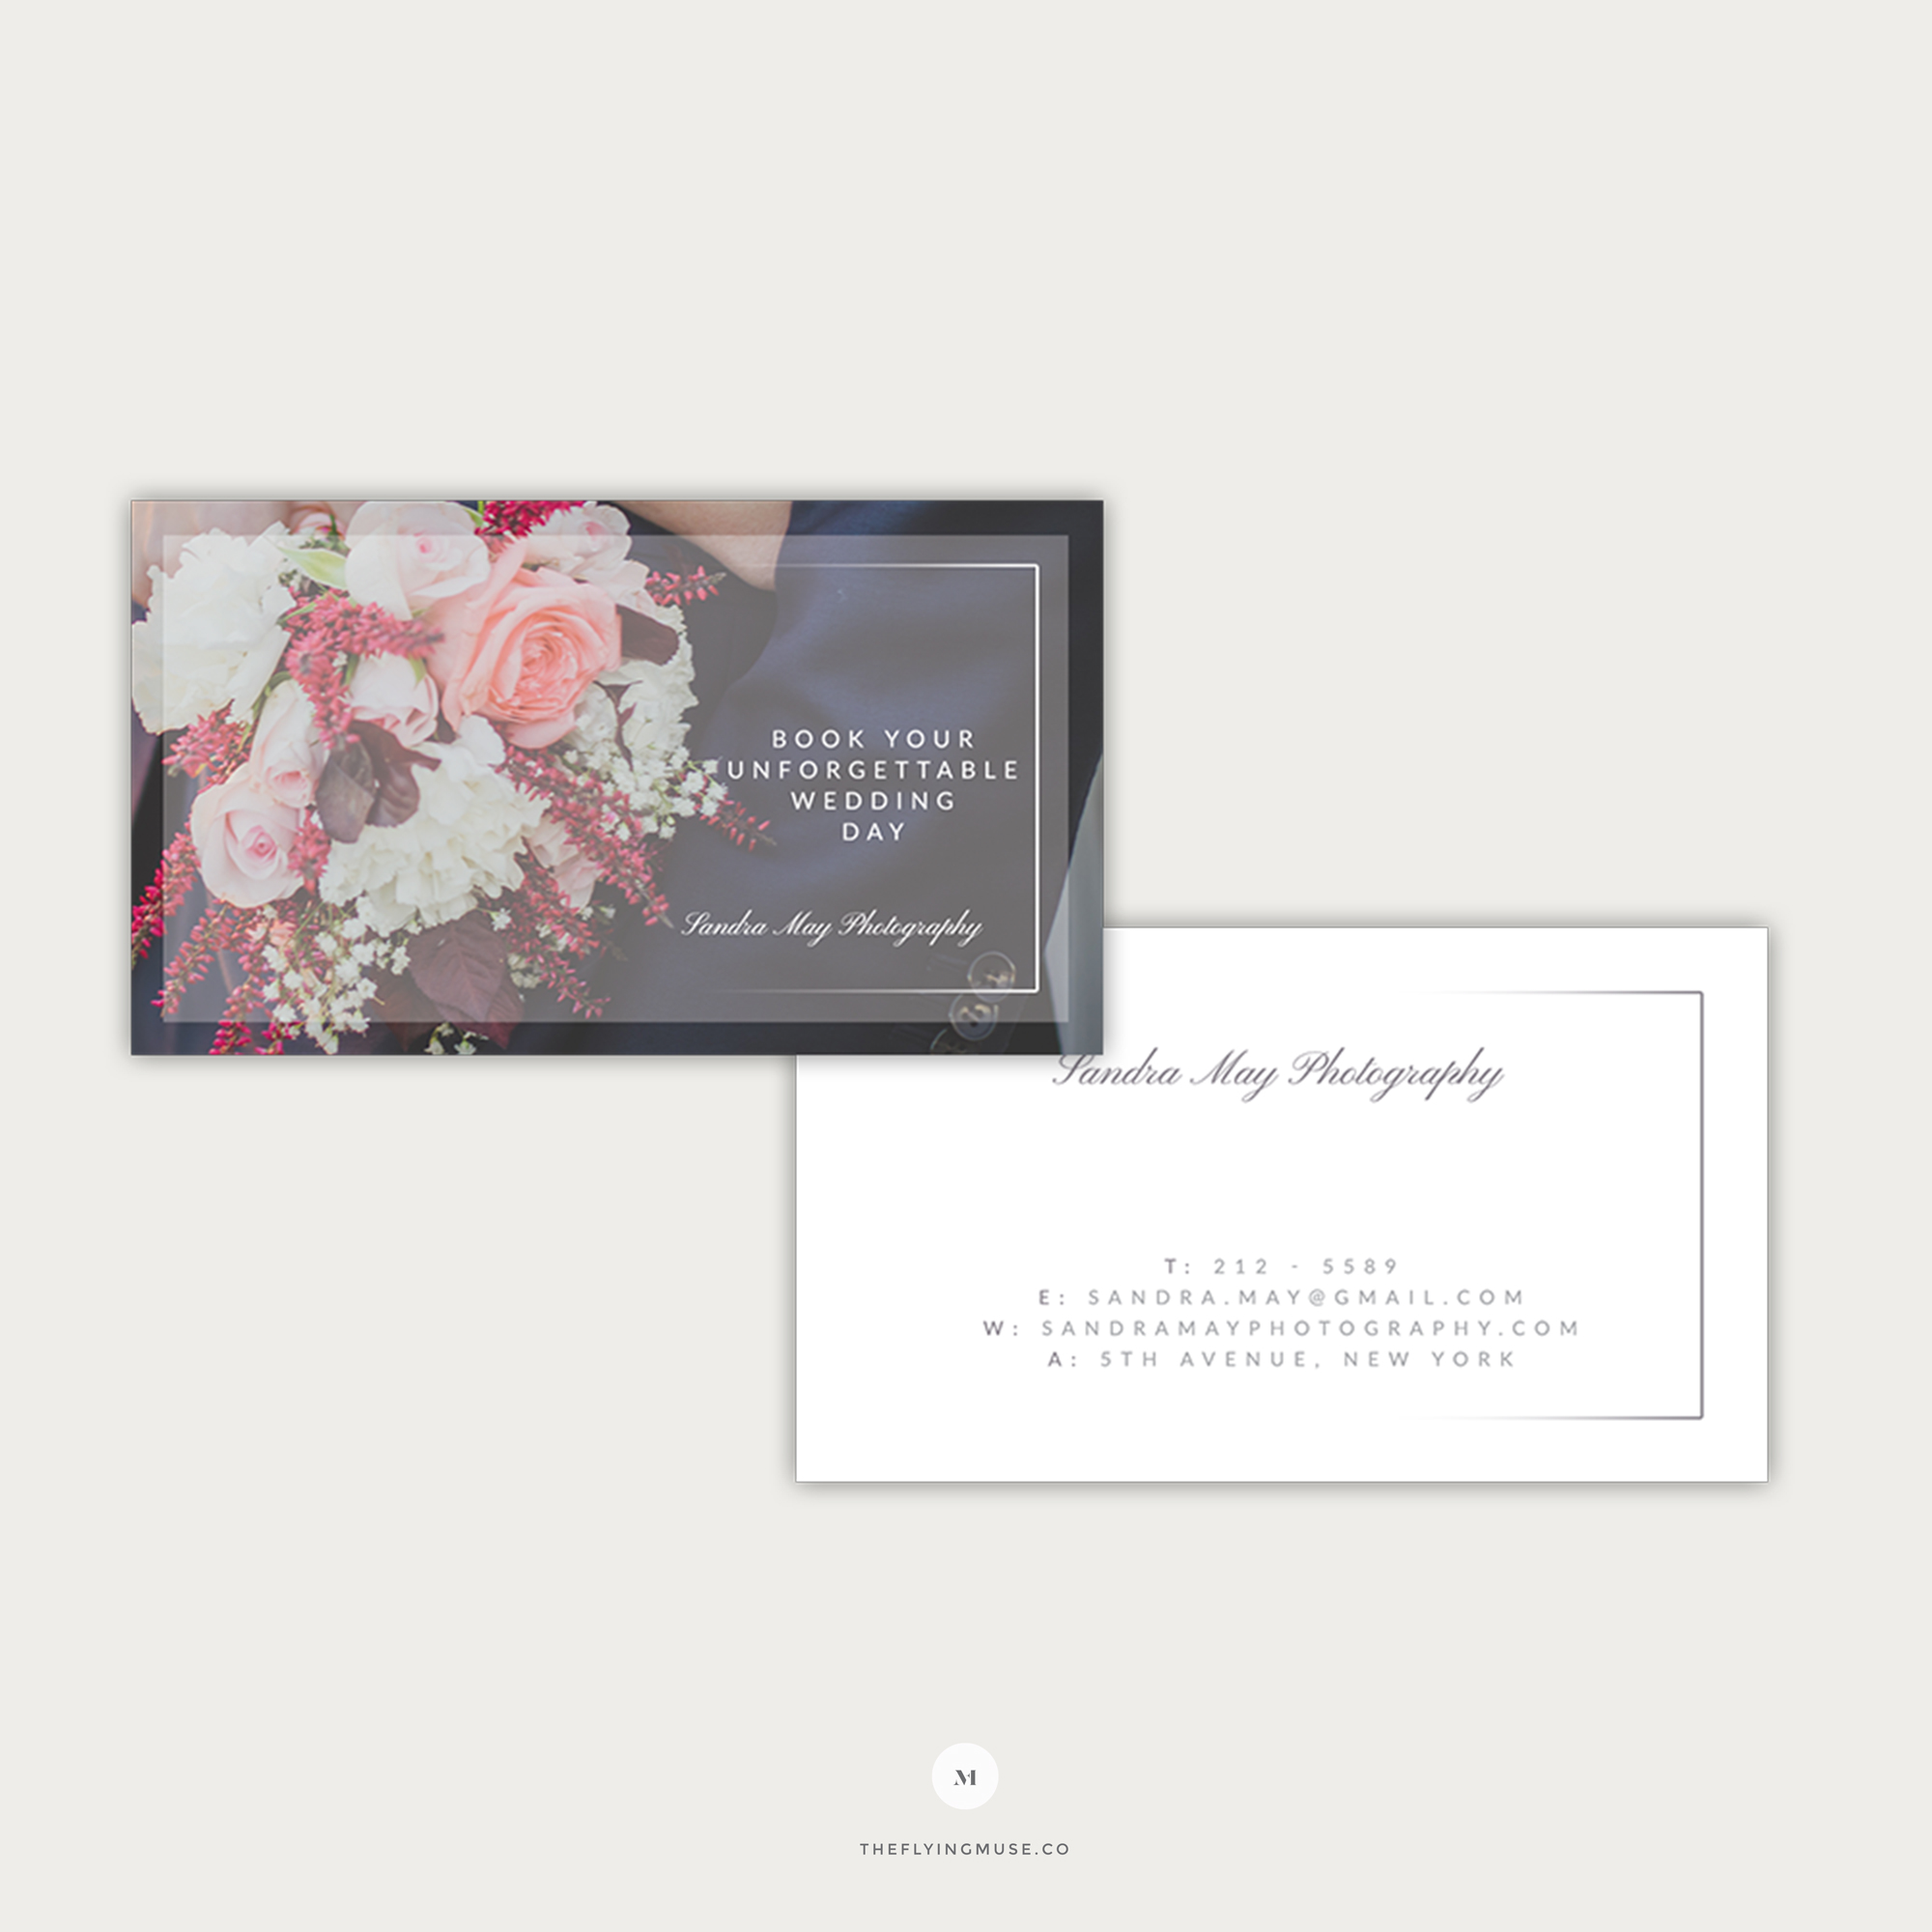 Elegant Wedding Business Cards Template for Photographers--BS004